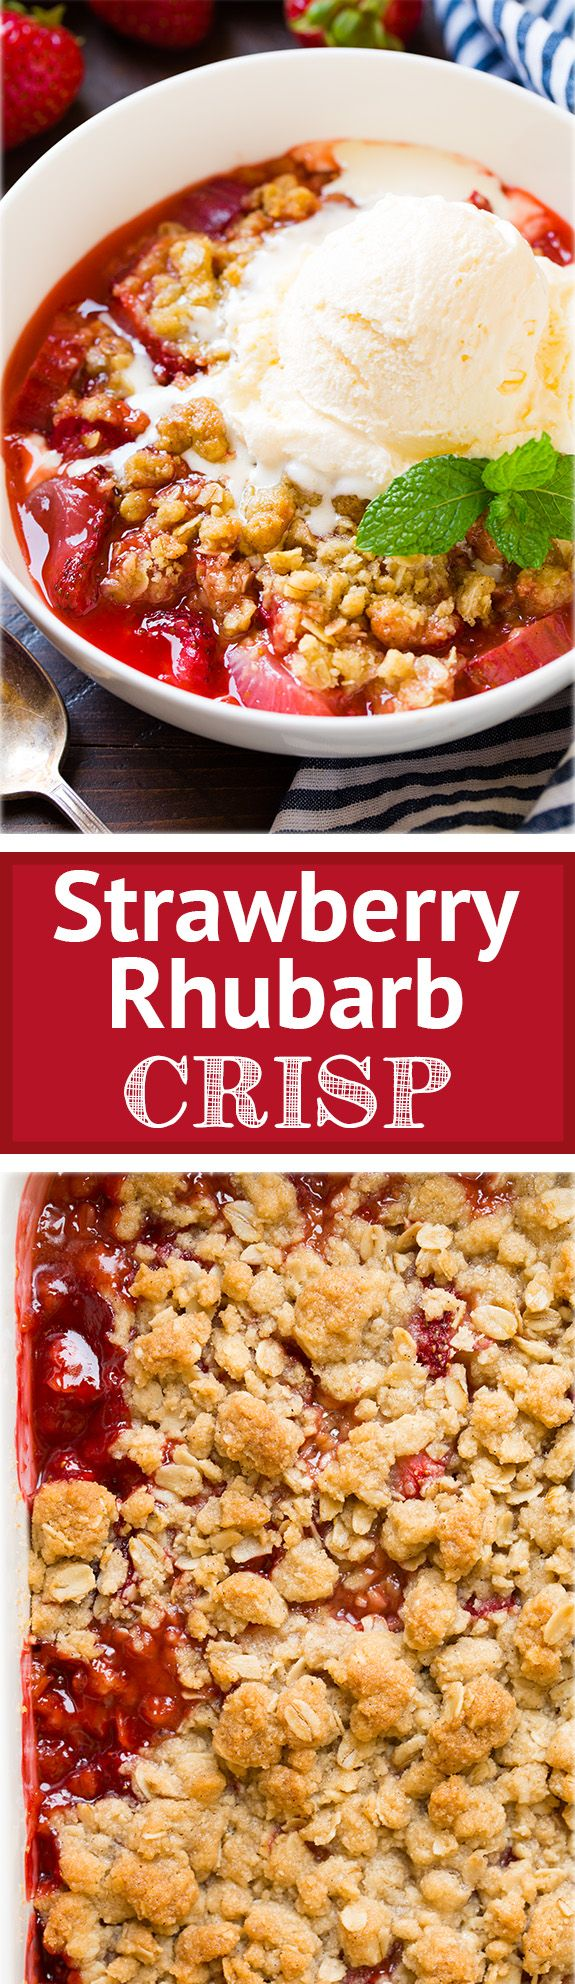 Strawberry Rhubarb Crisp - this is my new favorite rhubarb recipe! It's the perfect summer dessert!